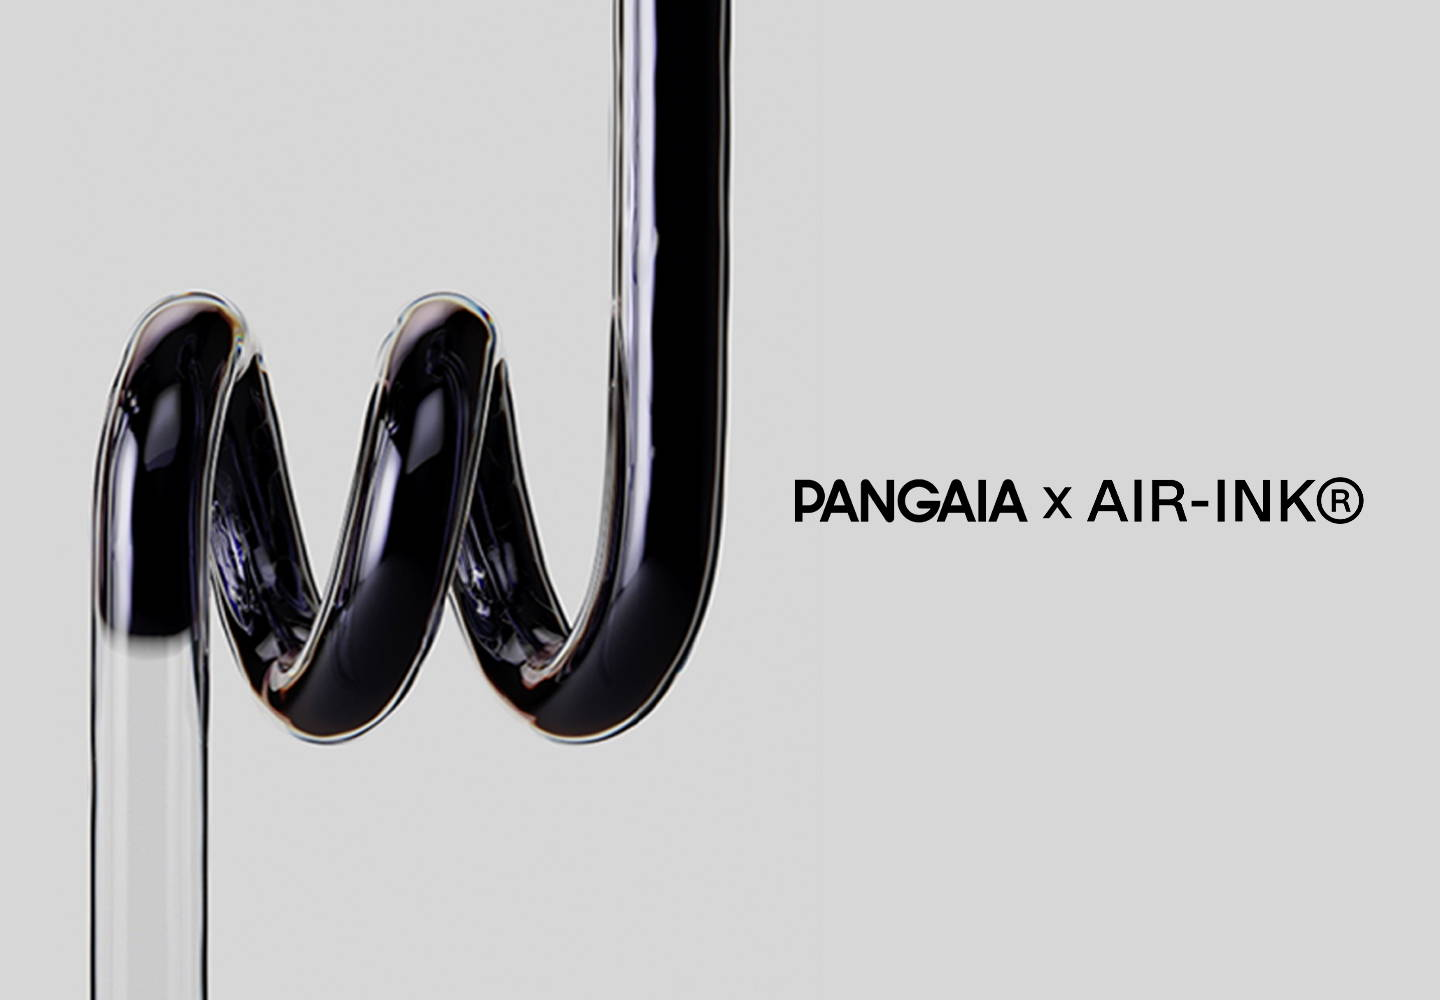 Pangaia's Air Ink aims to reduce pollution.